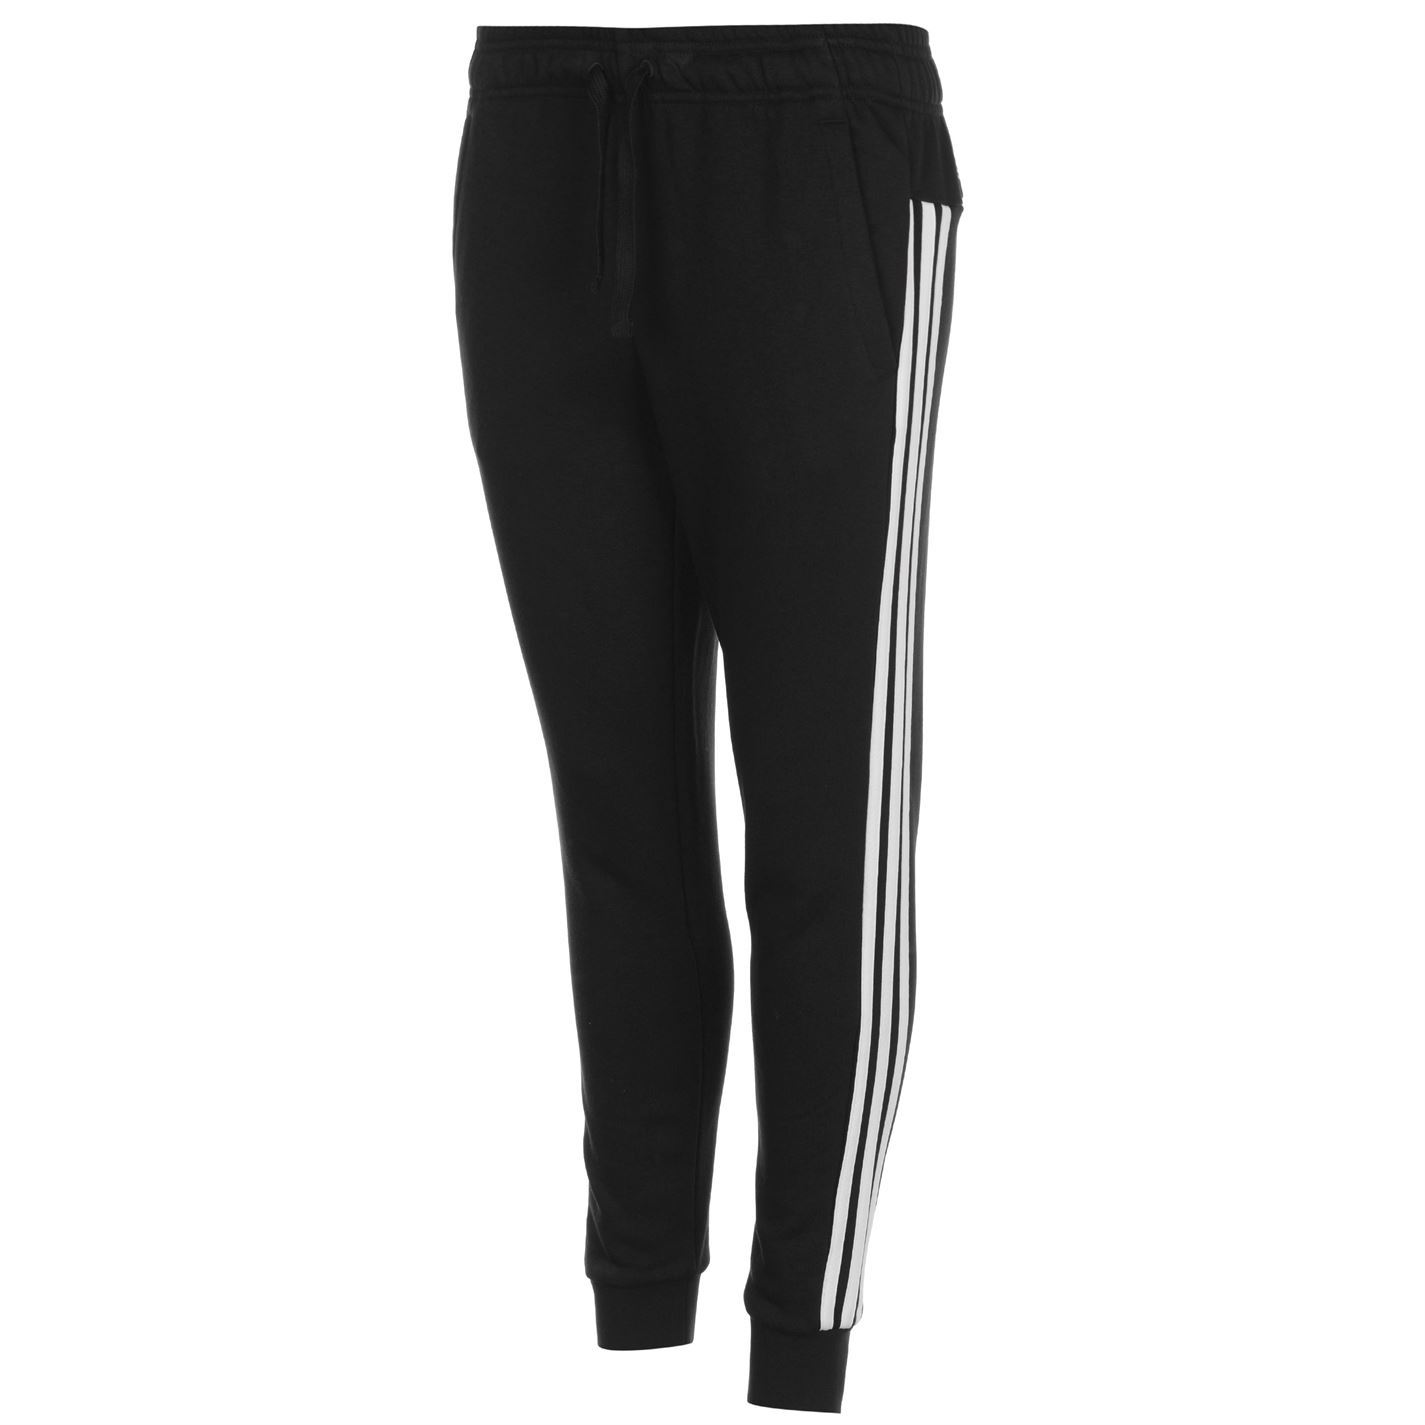 Vamp up your casual wardrobe in these adidas Essential 3 Stripe Closed Hem  Pants - designed with a jersey construction that offers warmth and comfort  ... fda643962daac